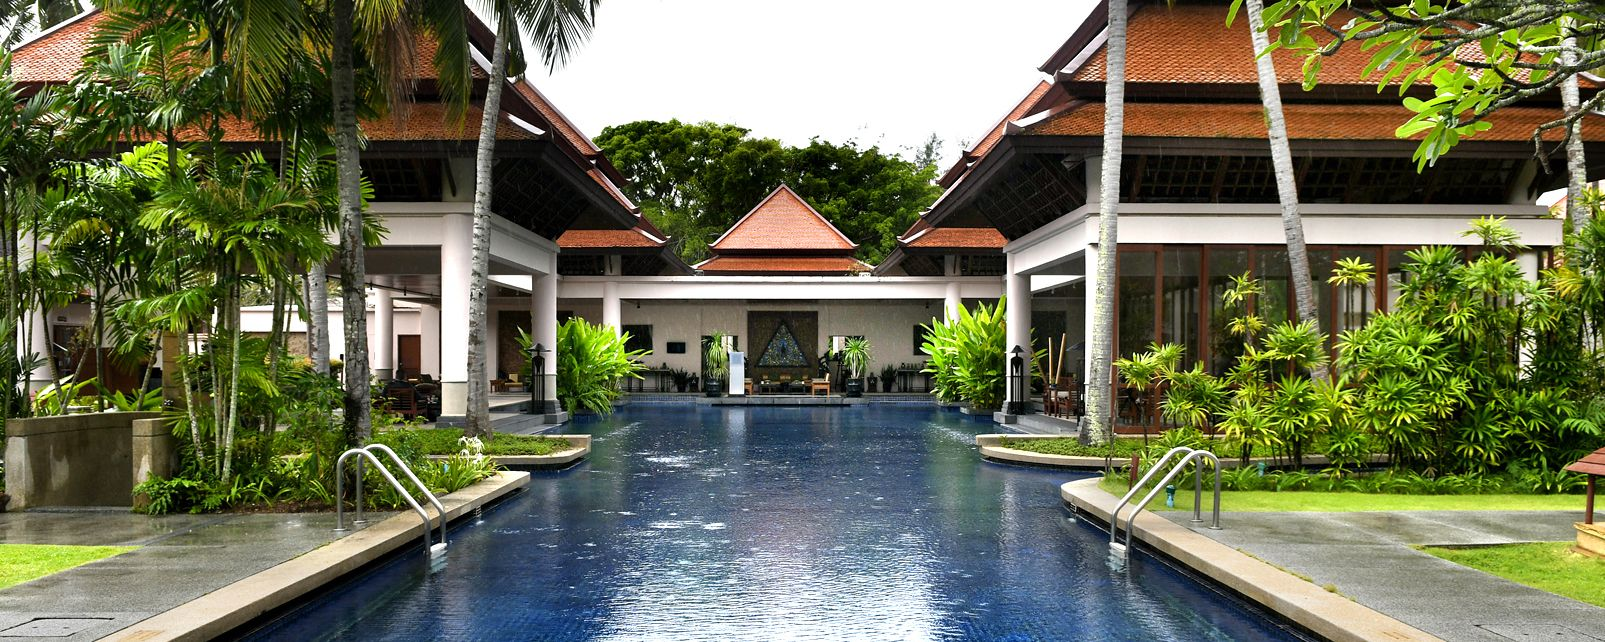 Hotel Banyan Tree